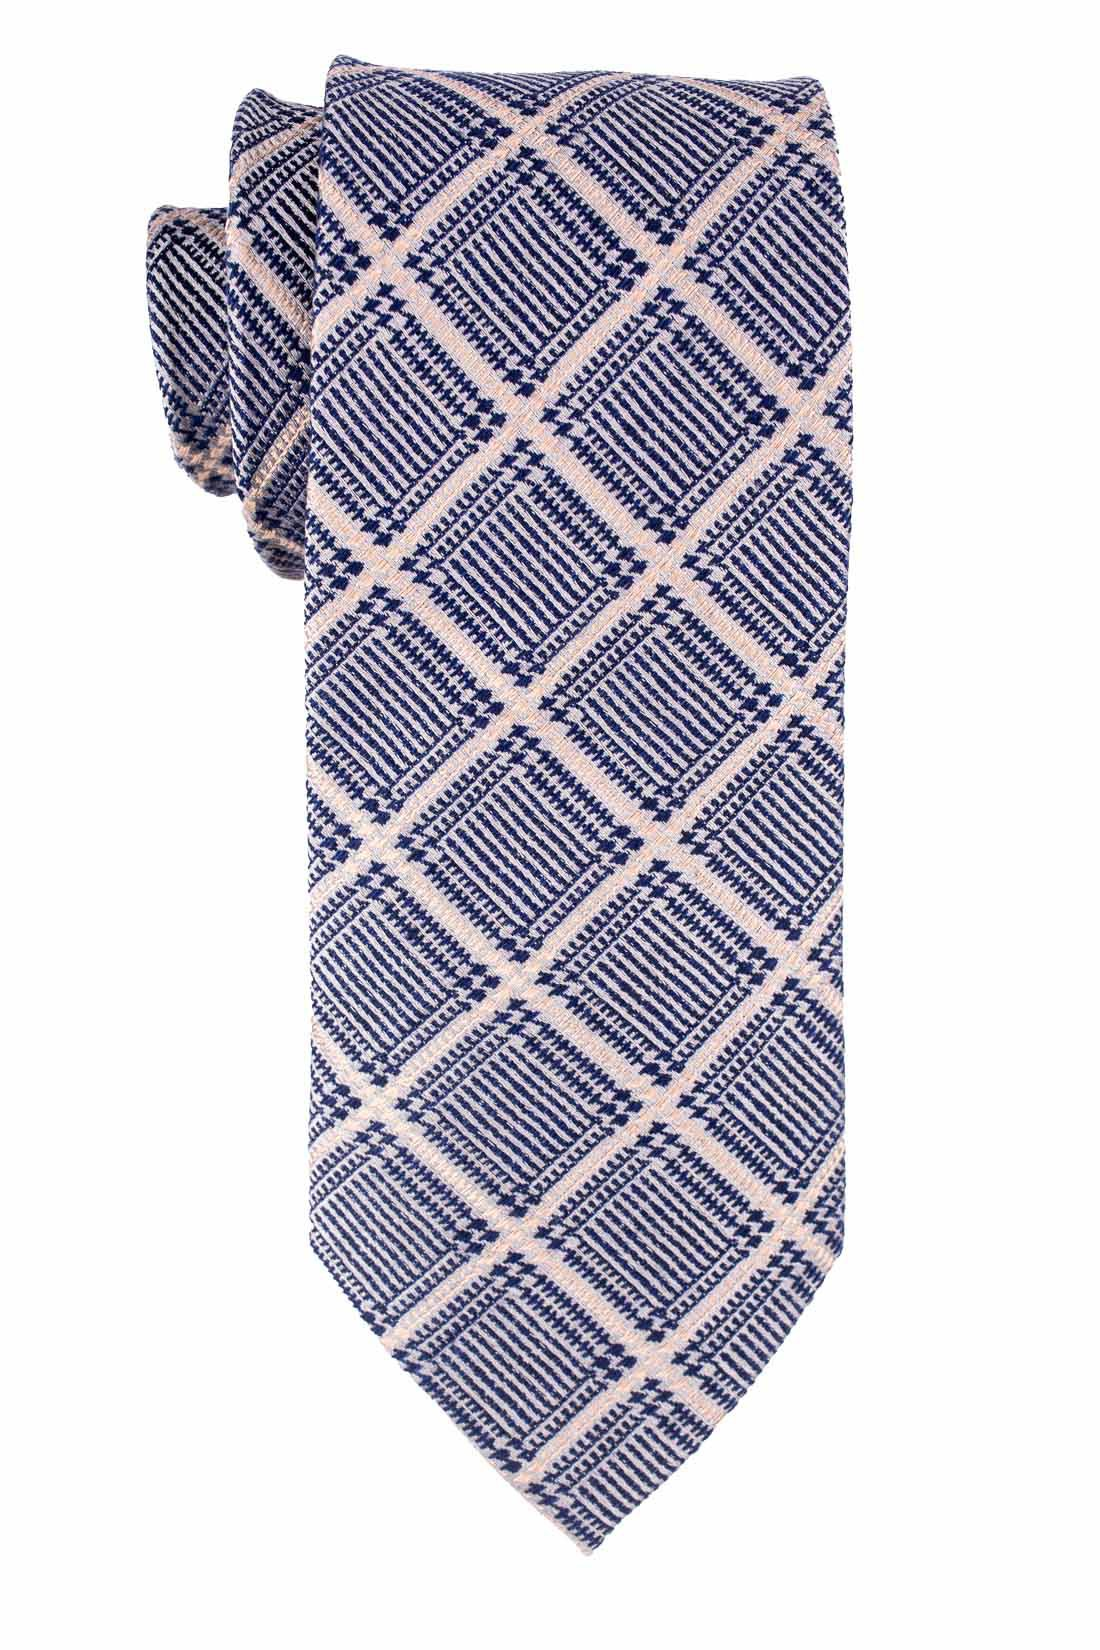 Blue And Grey Plaid Wool And Silk Necktie For Men By The Tie Hub